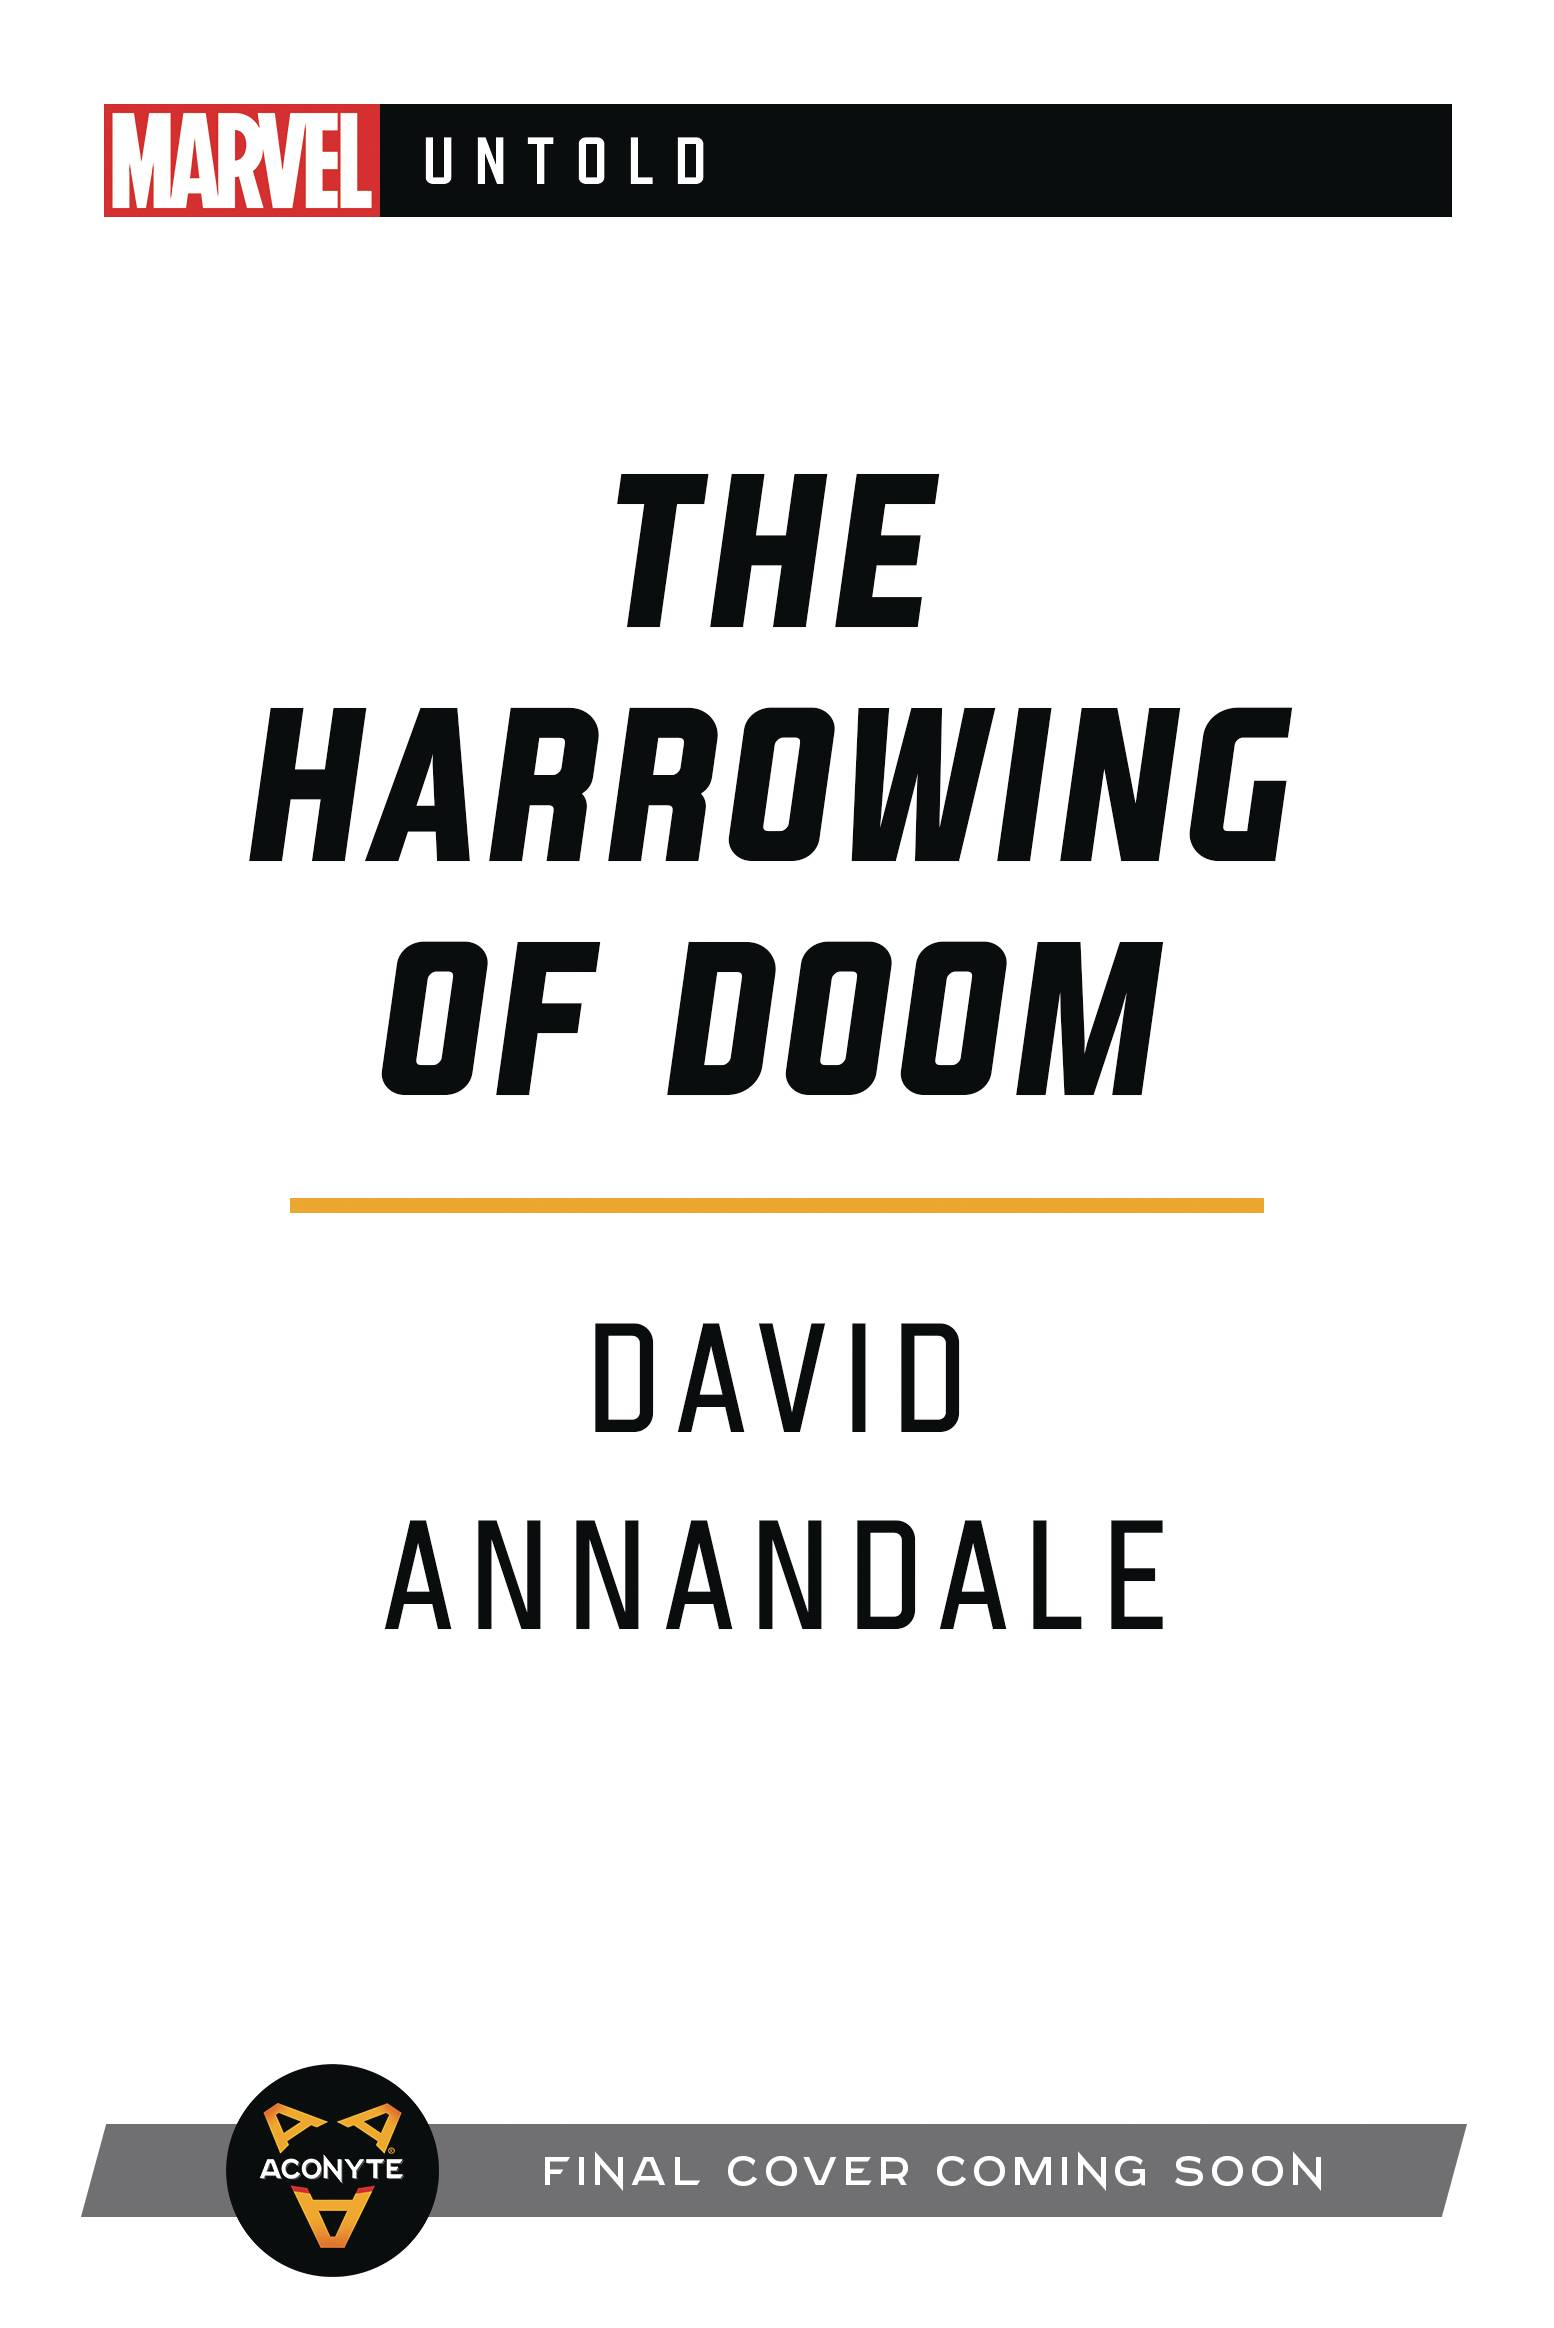 MARVEL UNTOLD NOVEL SC HARROWING OF DOOM